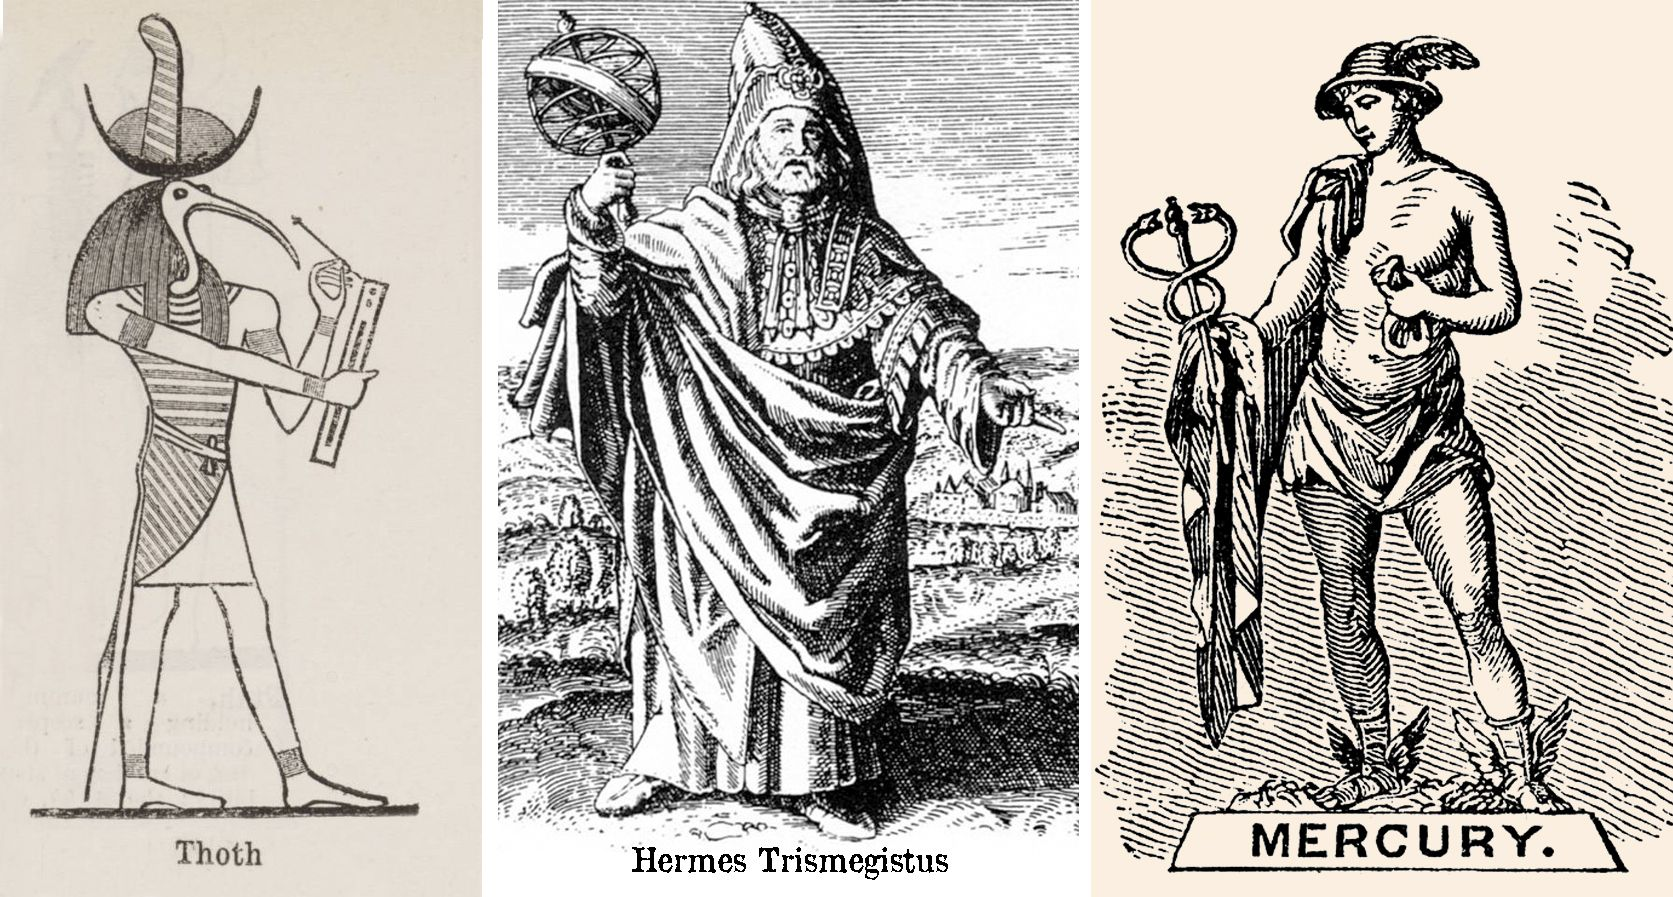 Wie is Hermes Trismegistus en Thoth?